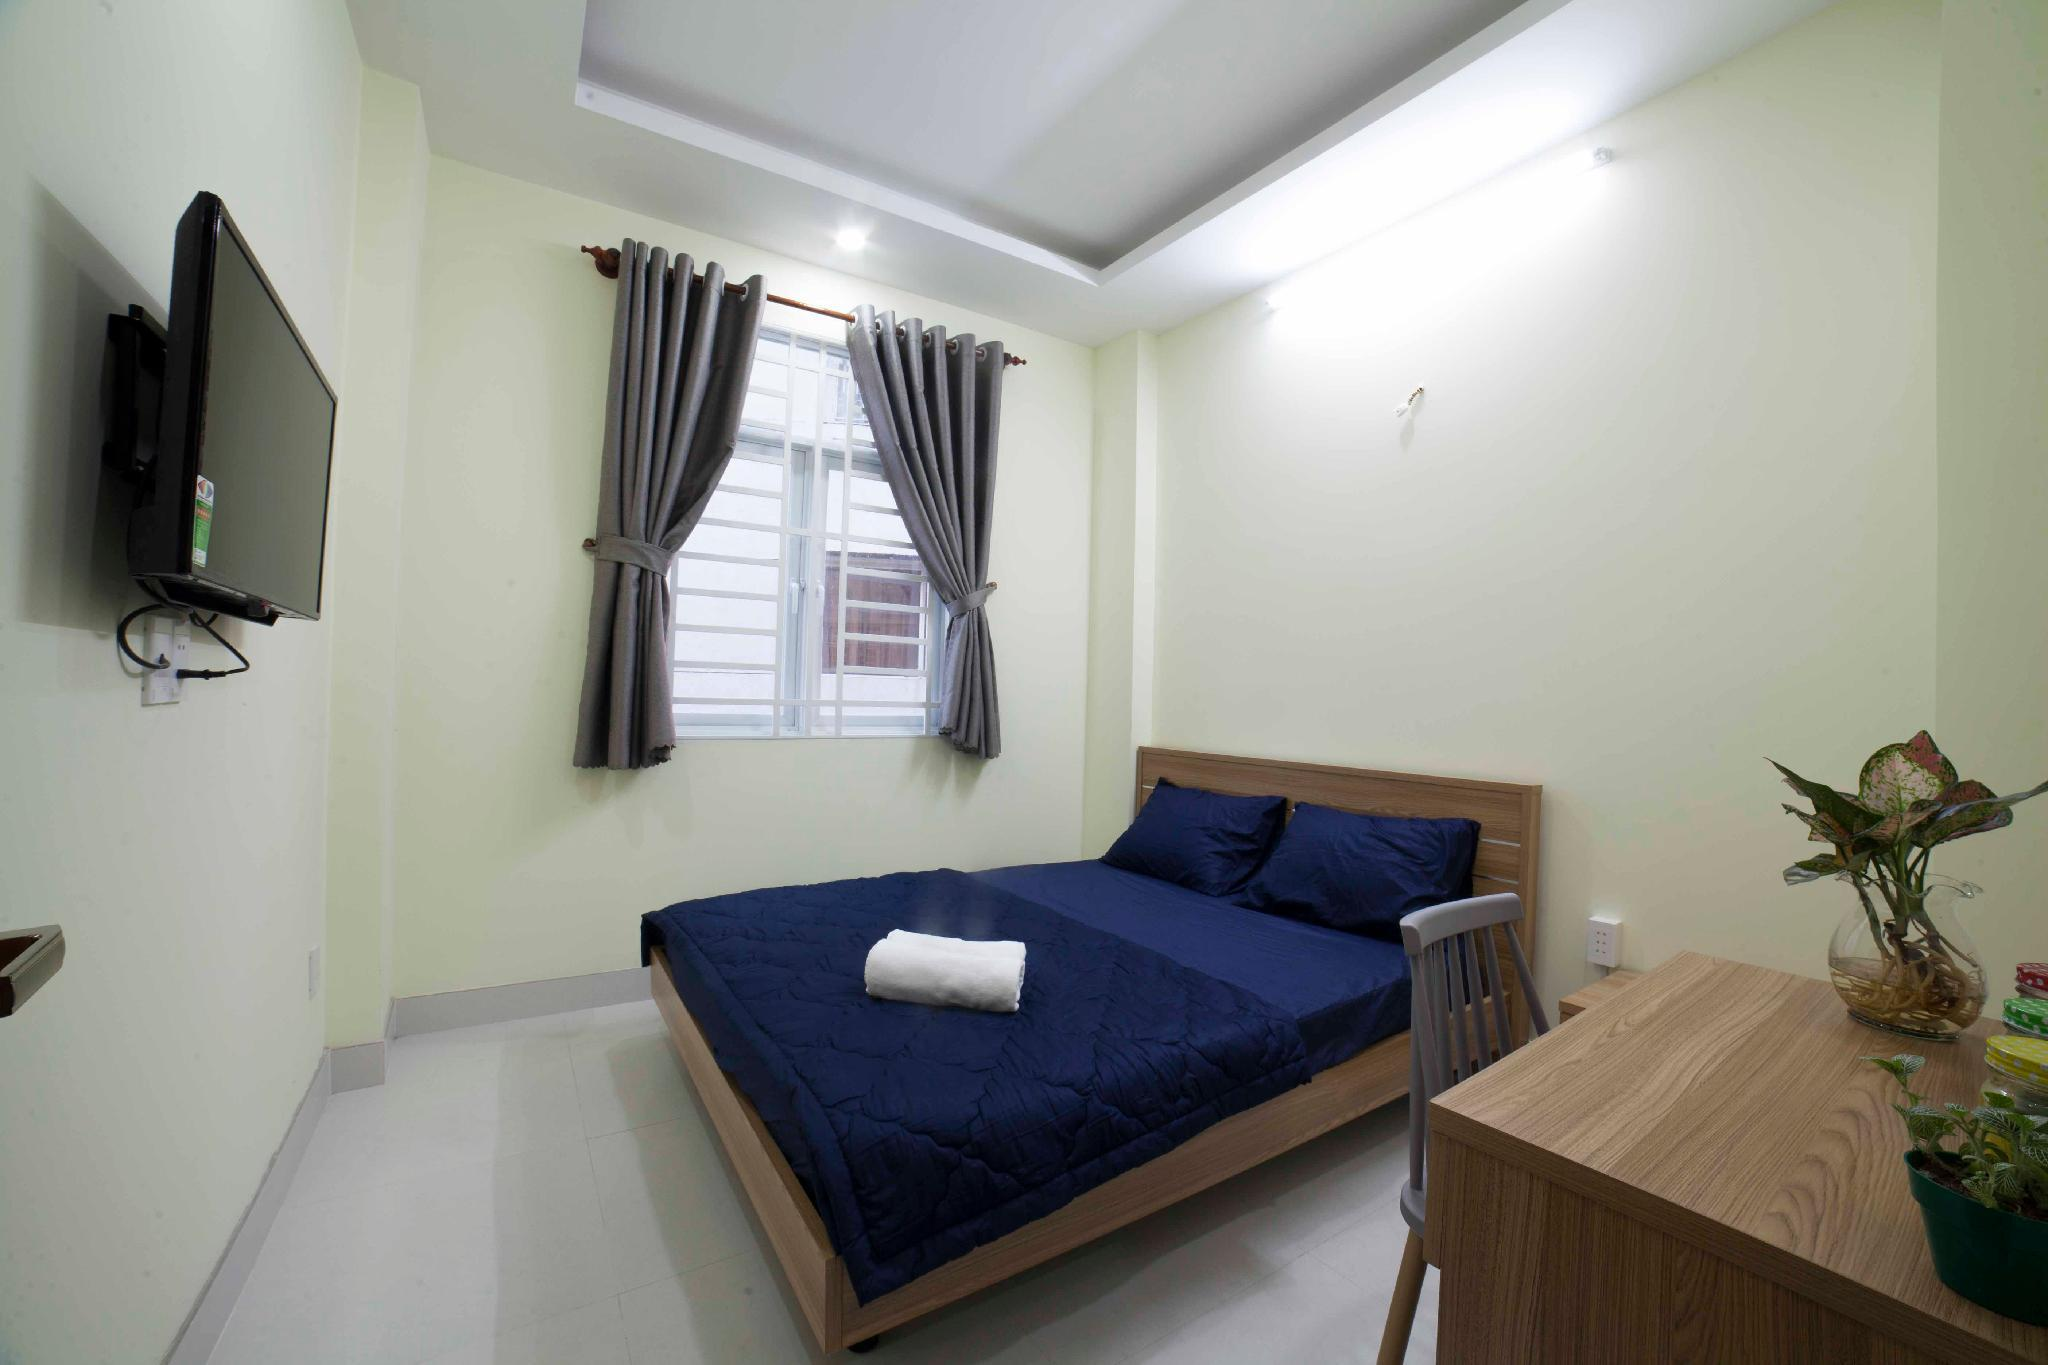 Deluxe Room With Big Windows At Masion Hometel 2